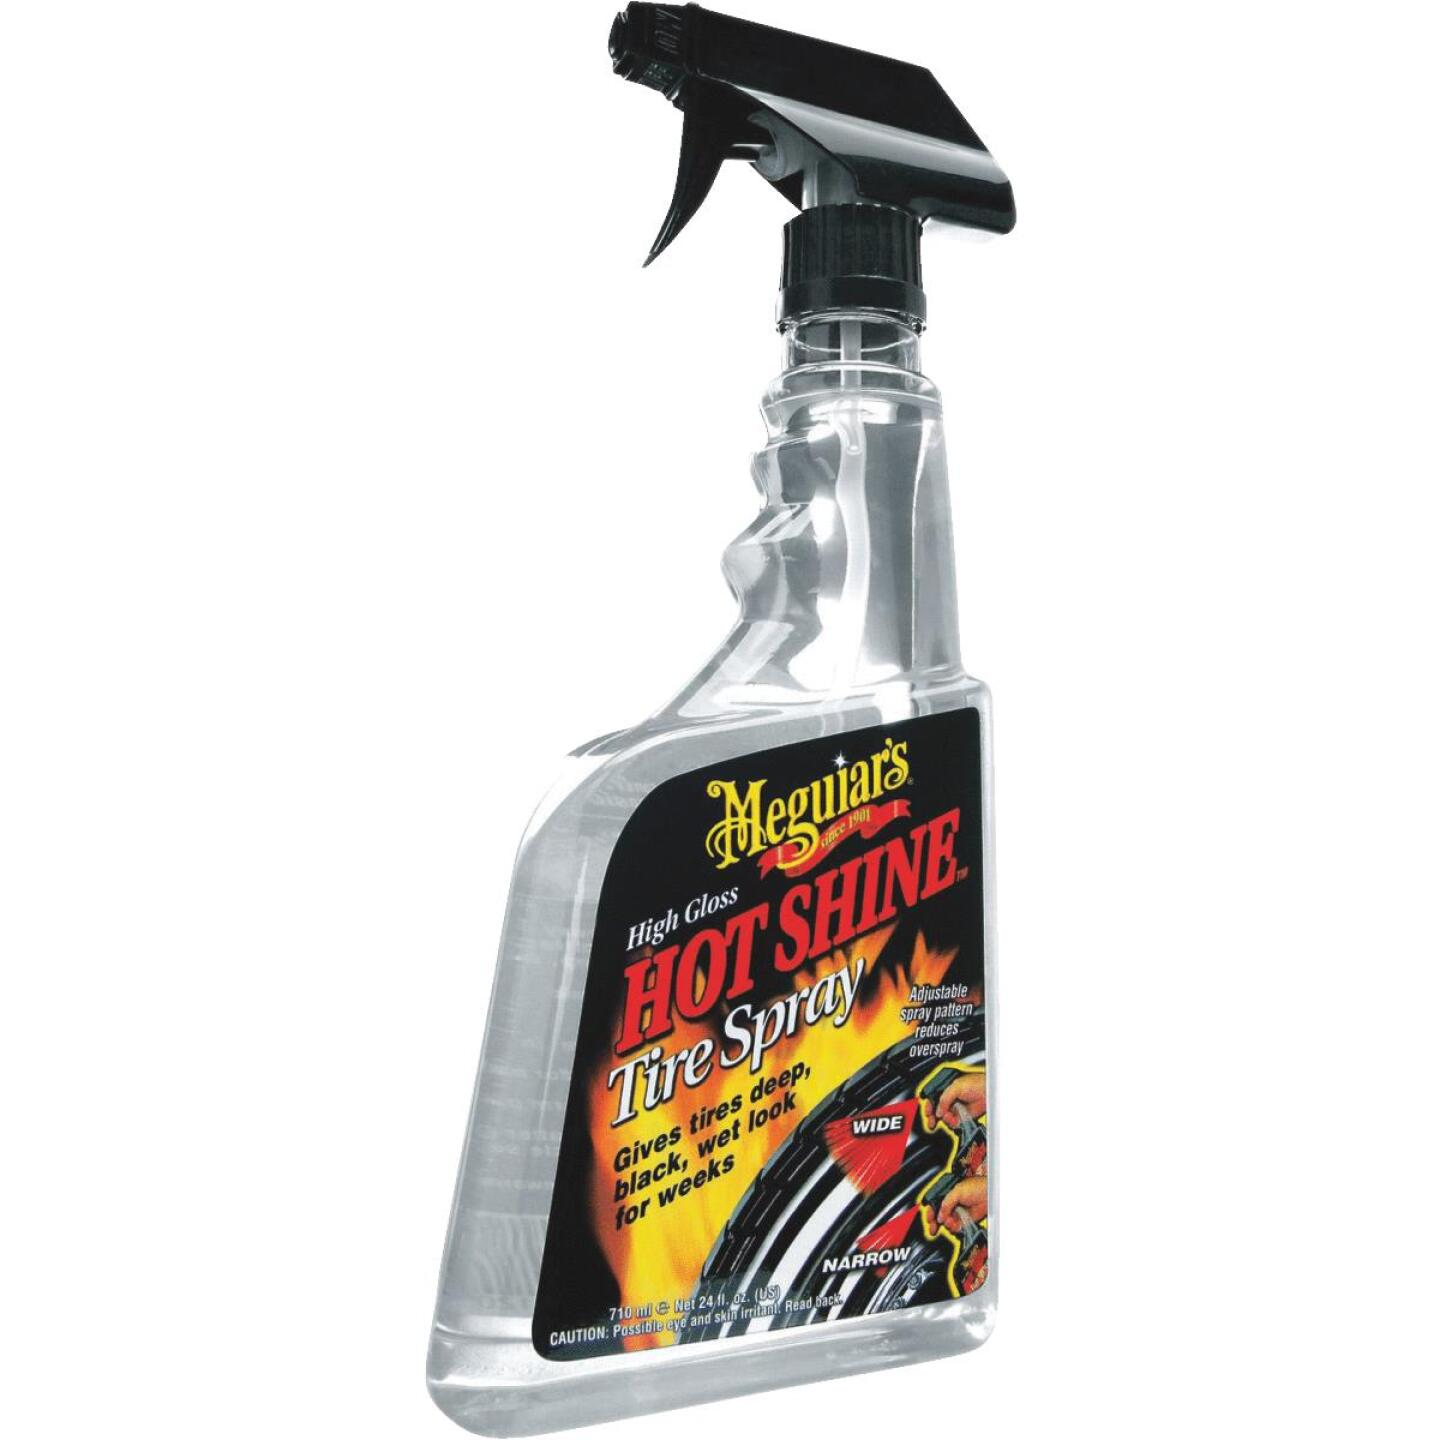 Meguiars Hot Shine High Gloss 24 Oz. Trigger Spray Tire Shine Image 1